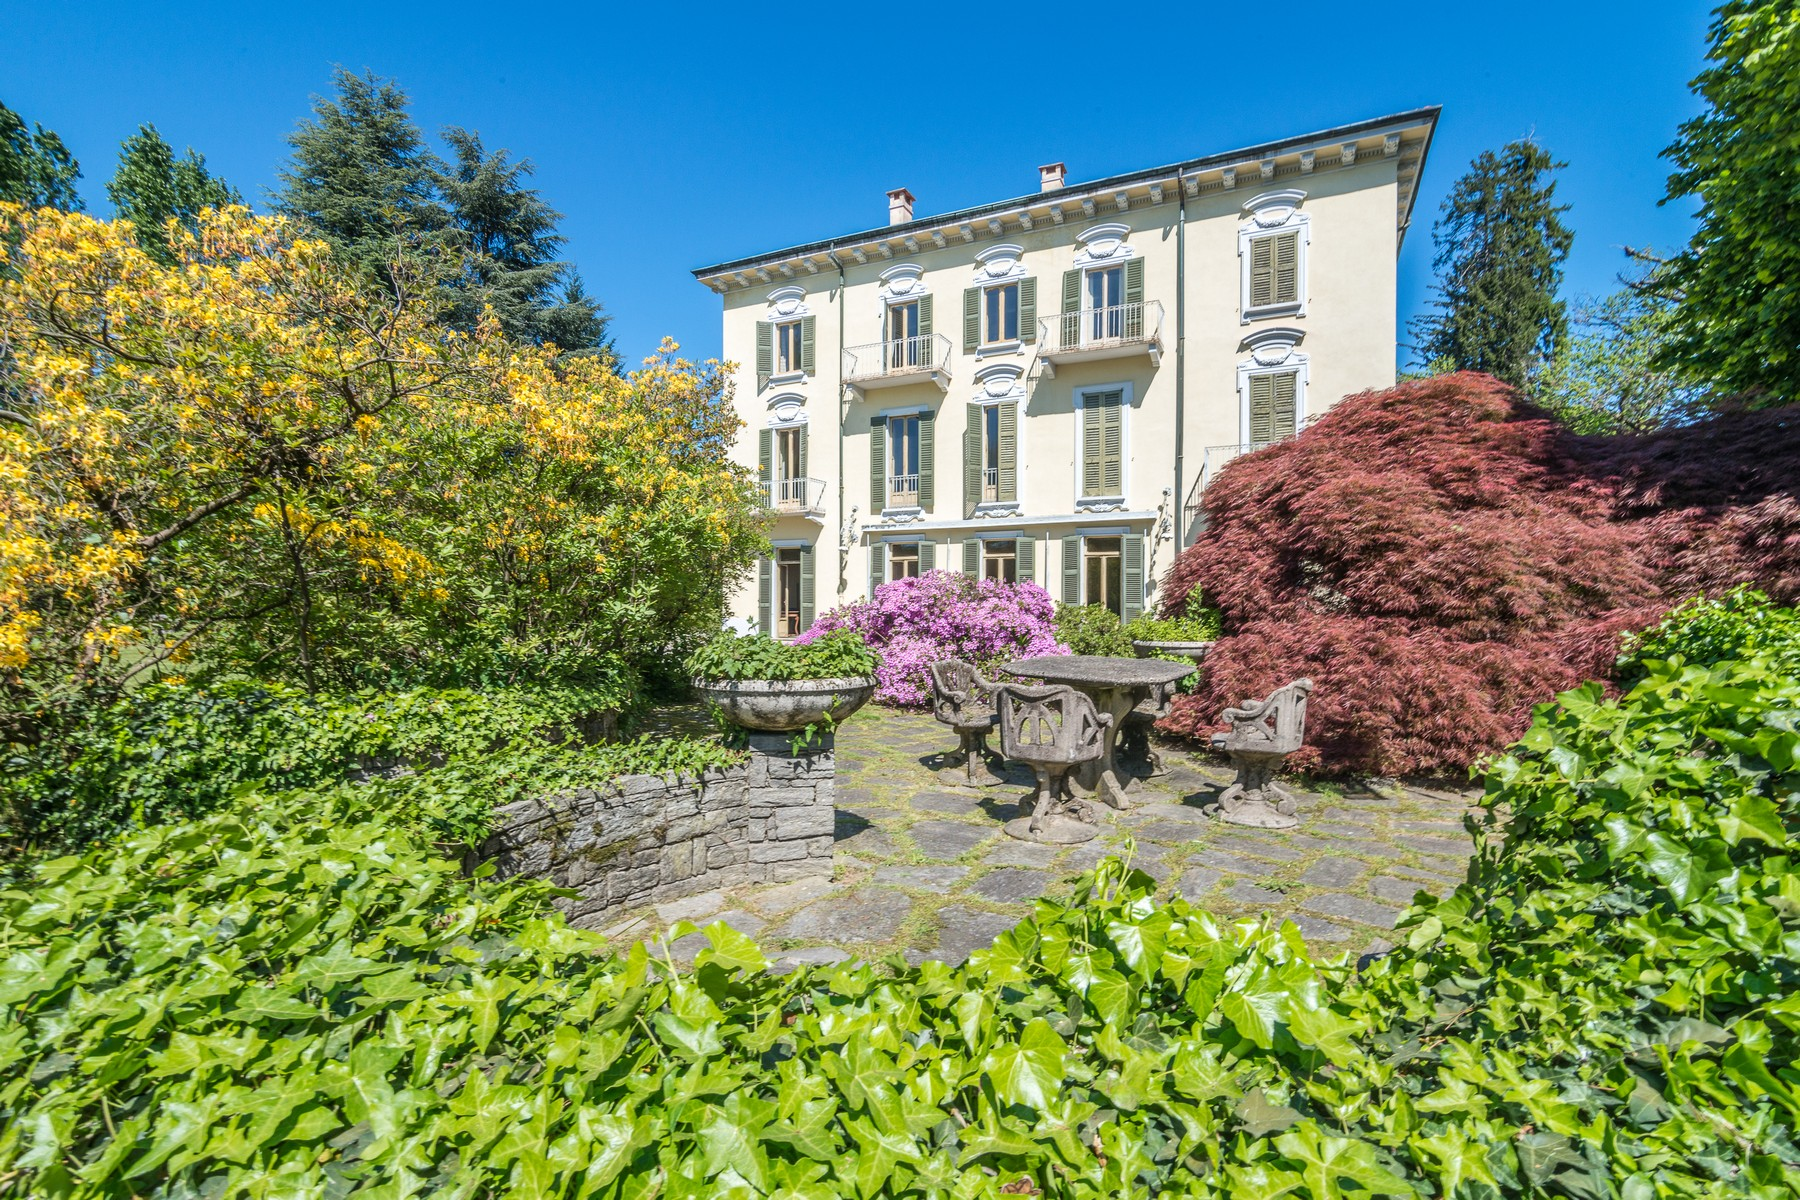 Single Family Home for Sale at Historical Villa surrounded by secular park Via Solferino Varese, Varese 21100 Italy